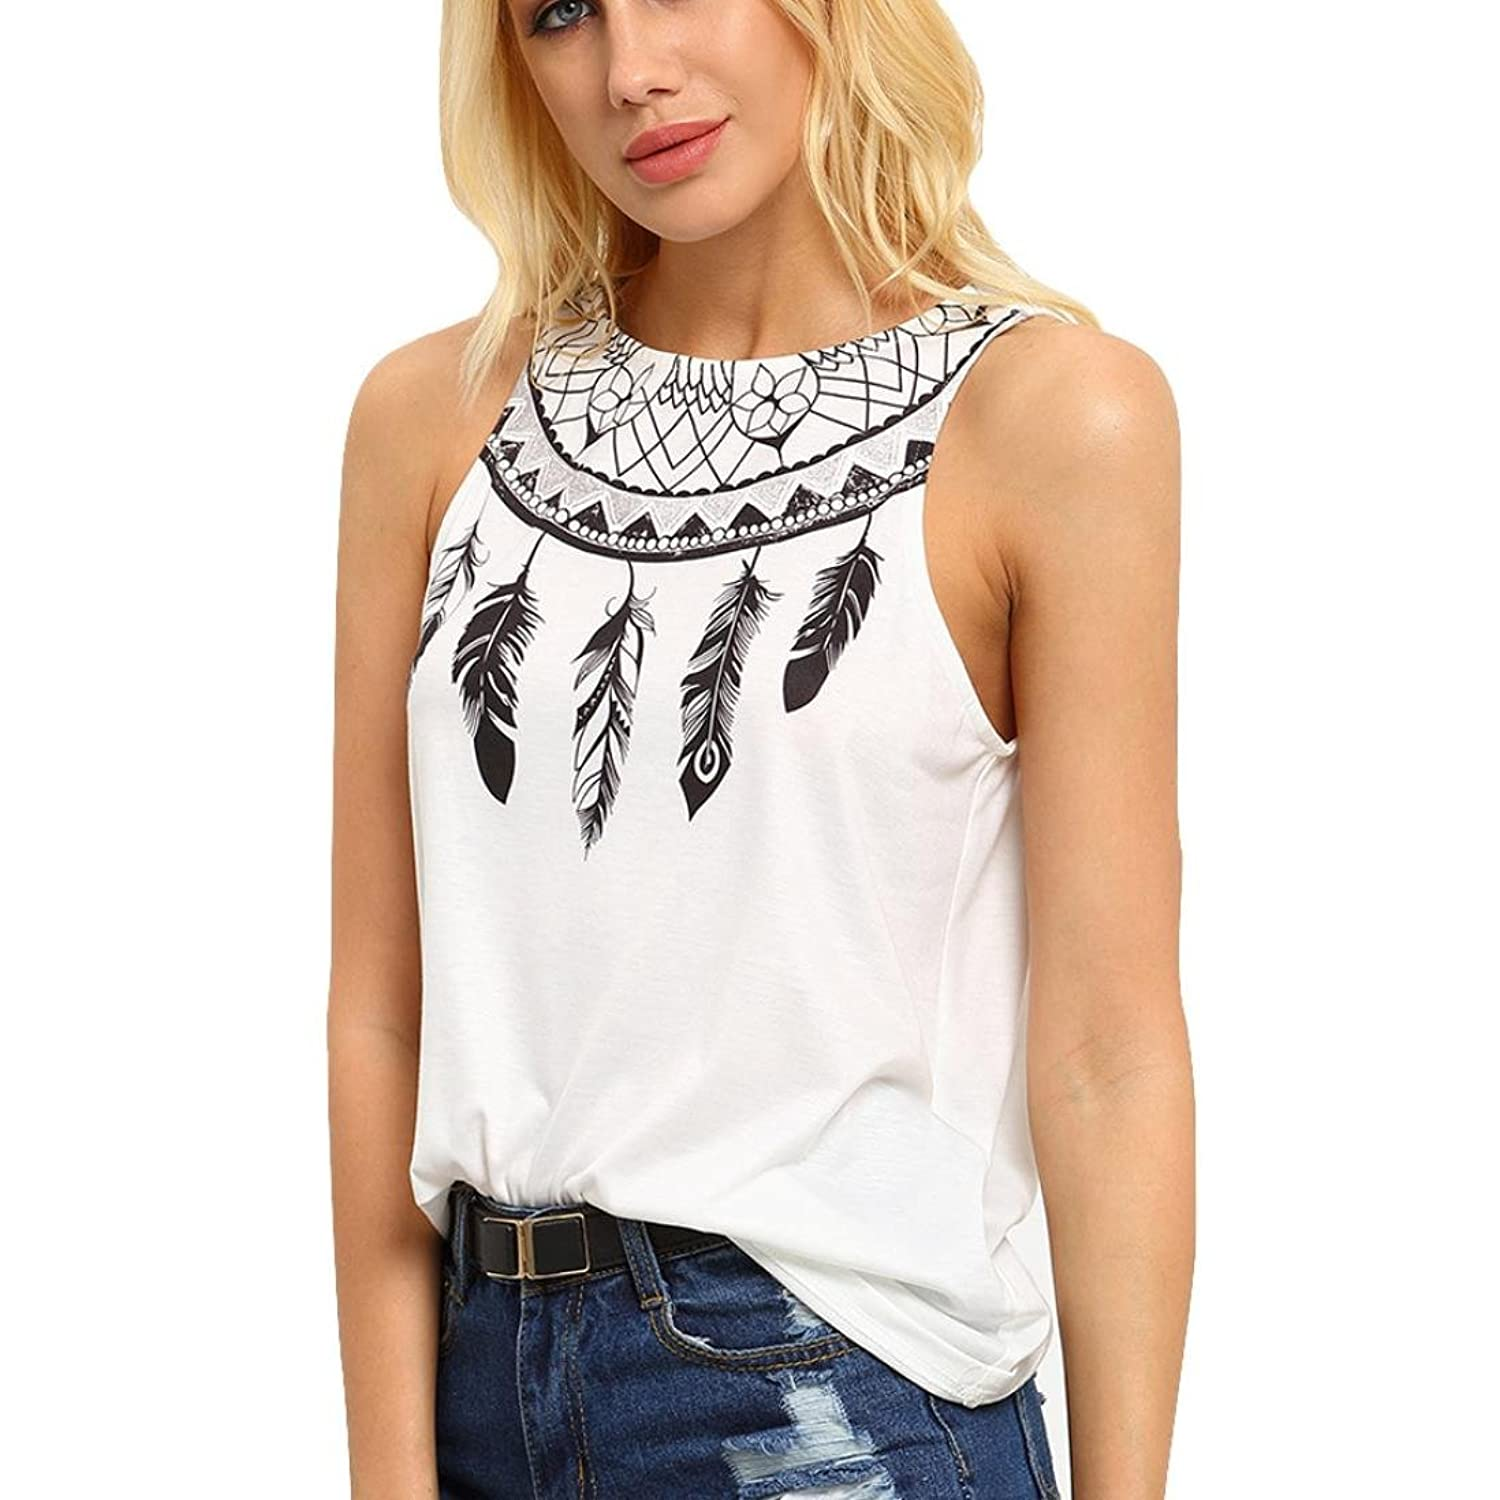 Gloous Casual Summer Sleeveless Feather Printed Blouse T Shirt